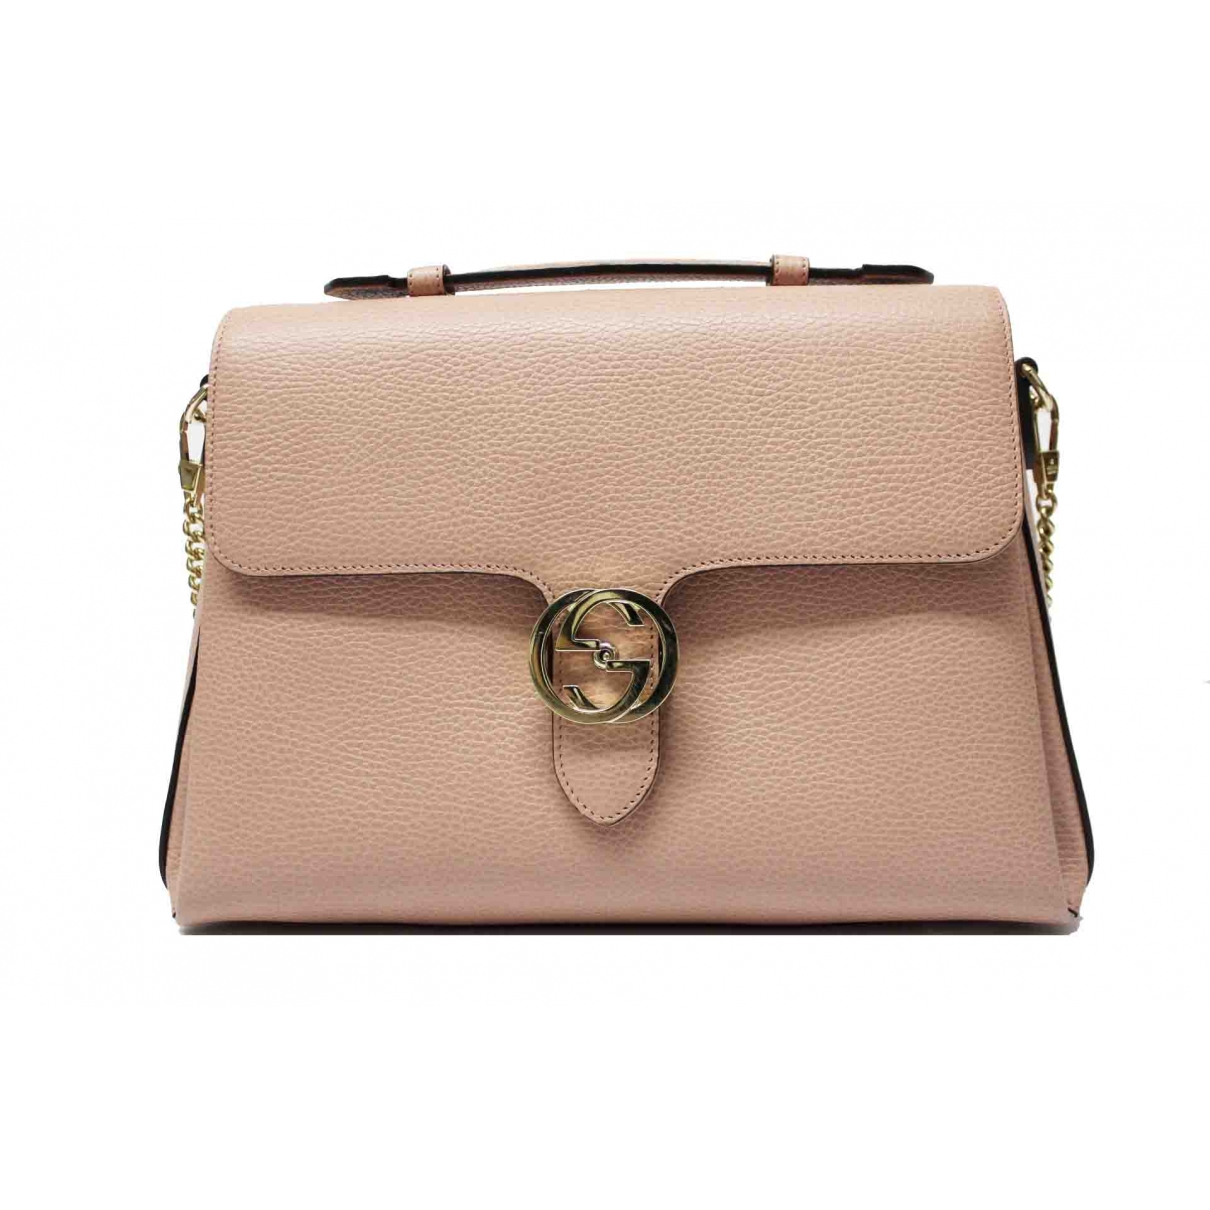 Gucci Interlocking Pink Leather handbag for Women \N